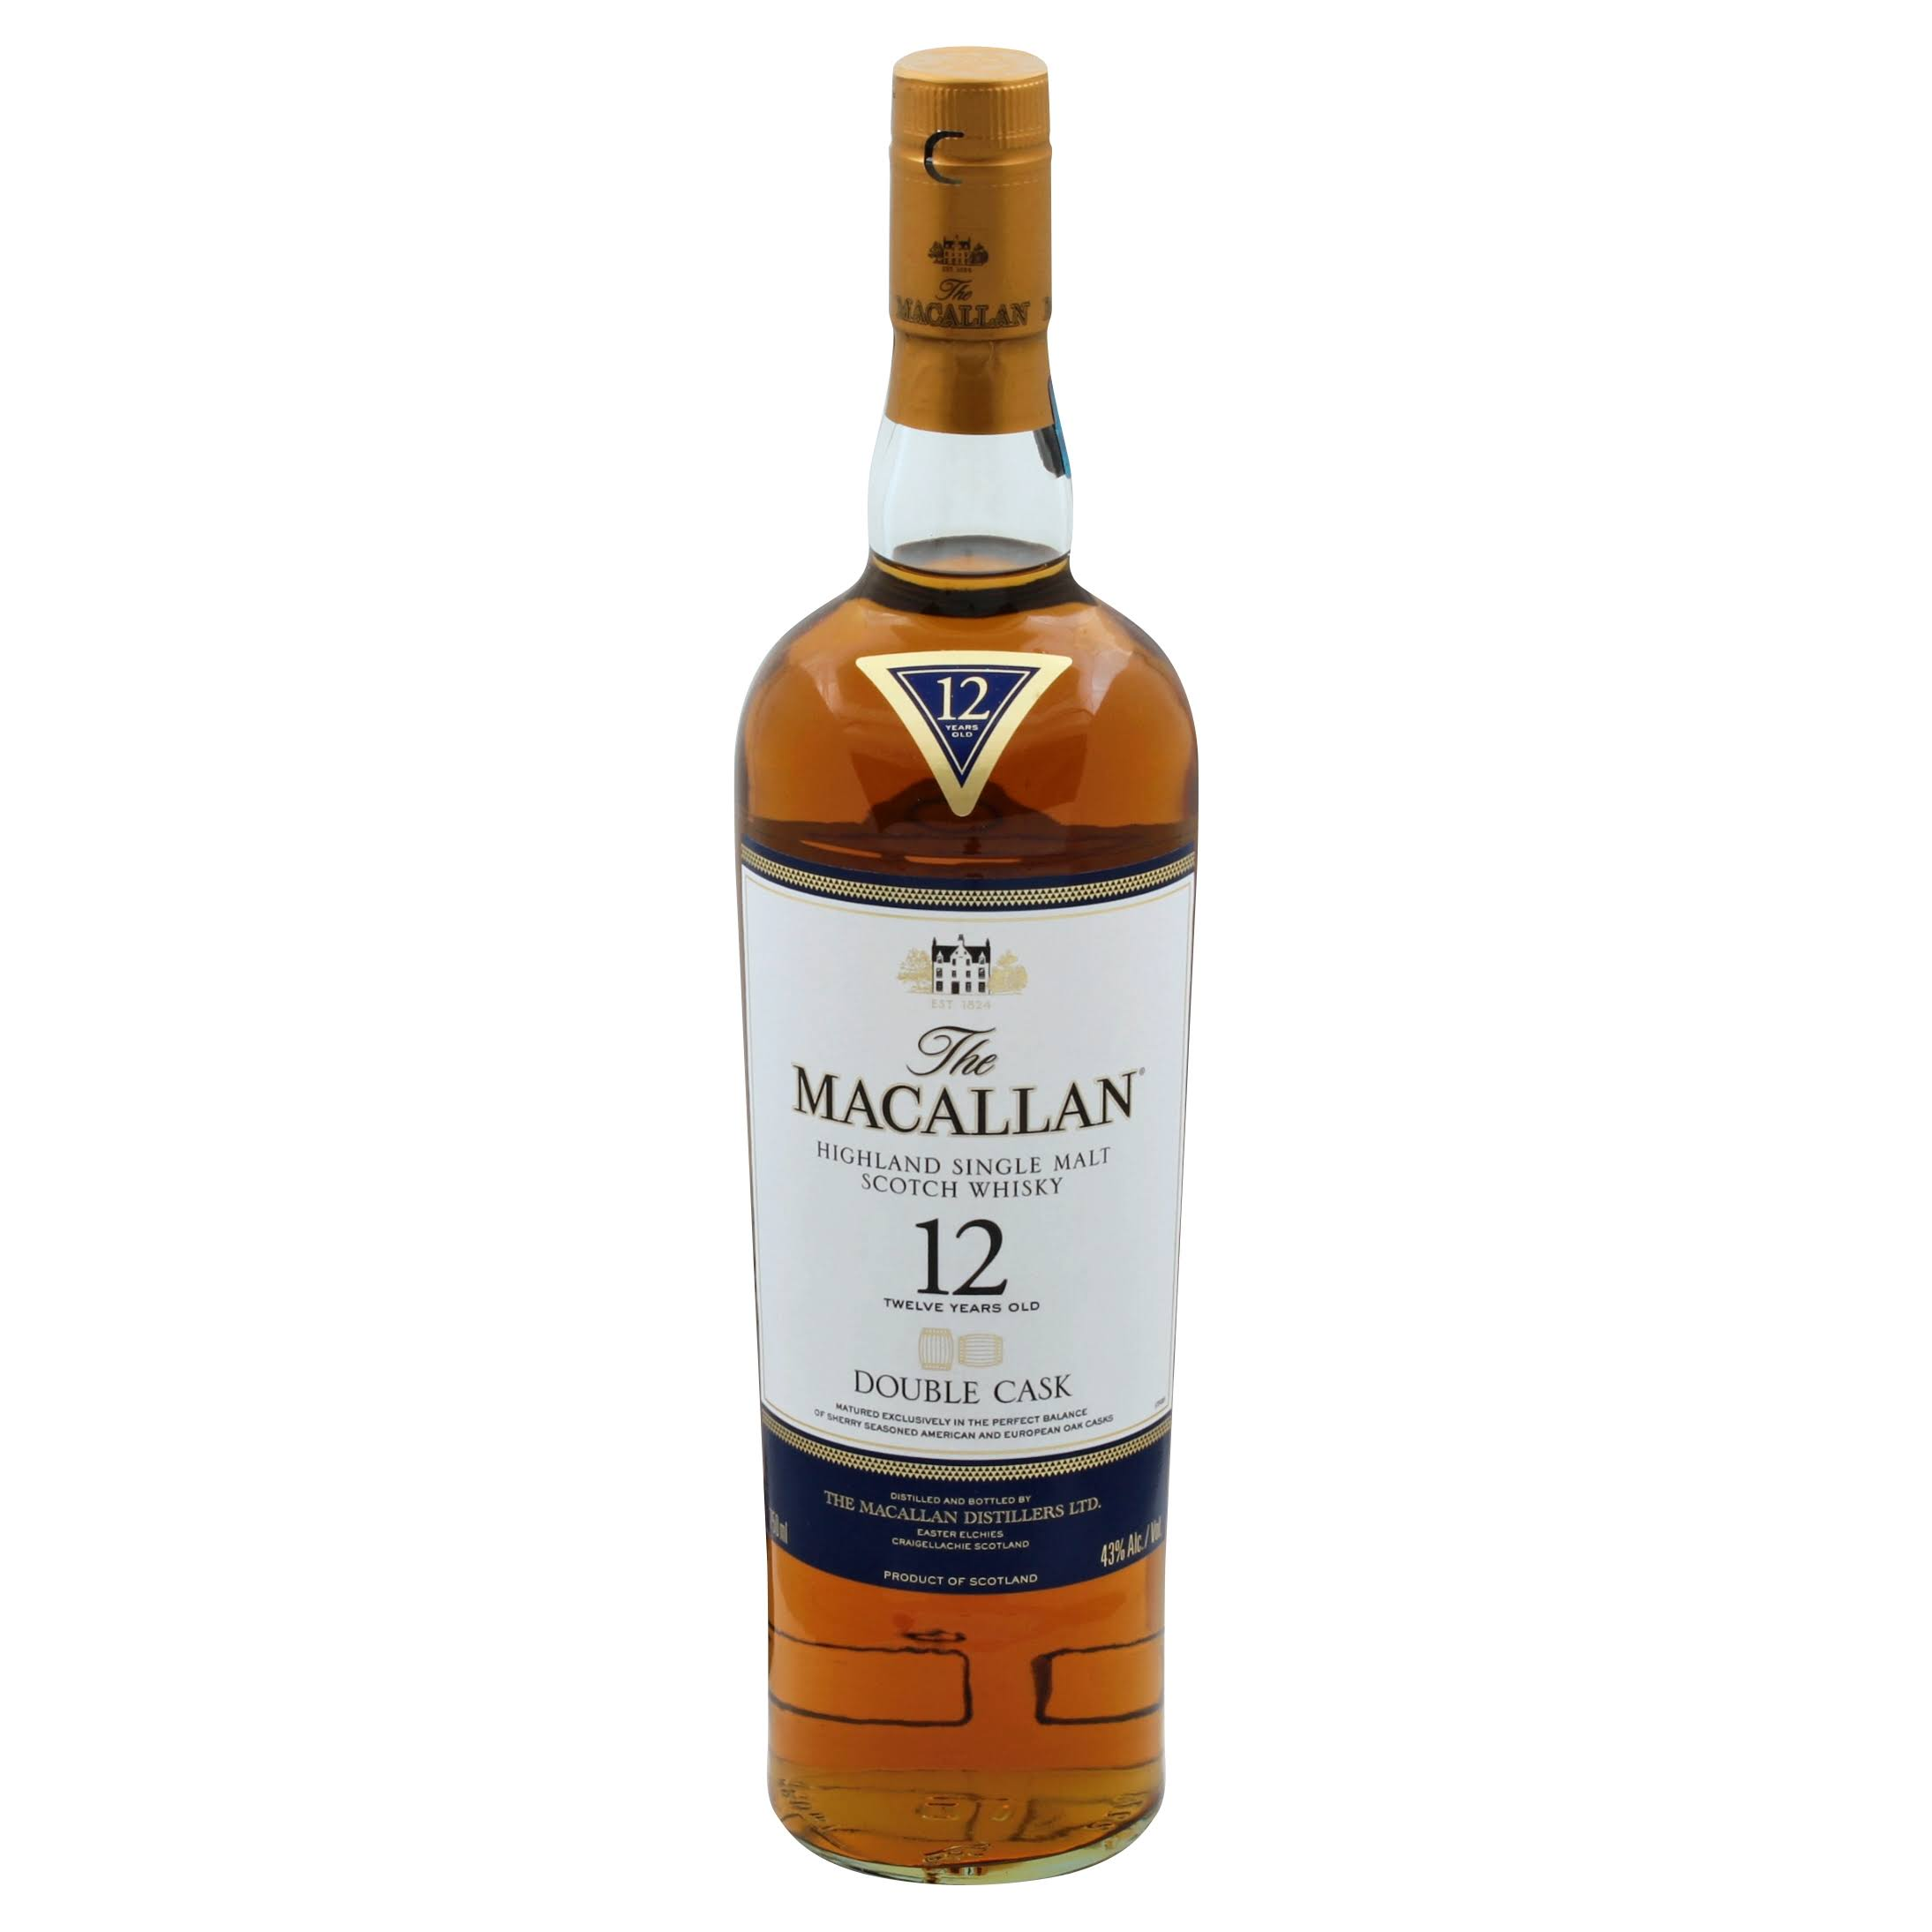 Macallan 12 Year Old Double Cask Whiskey - 750 ml bottle